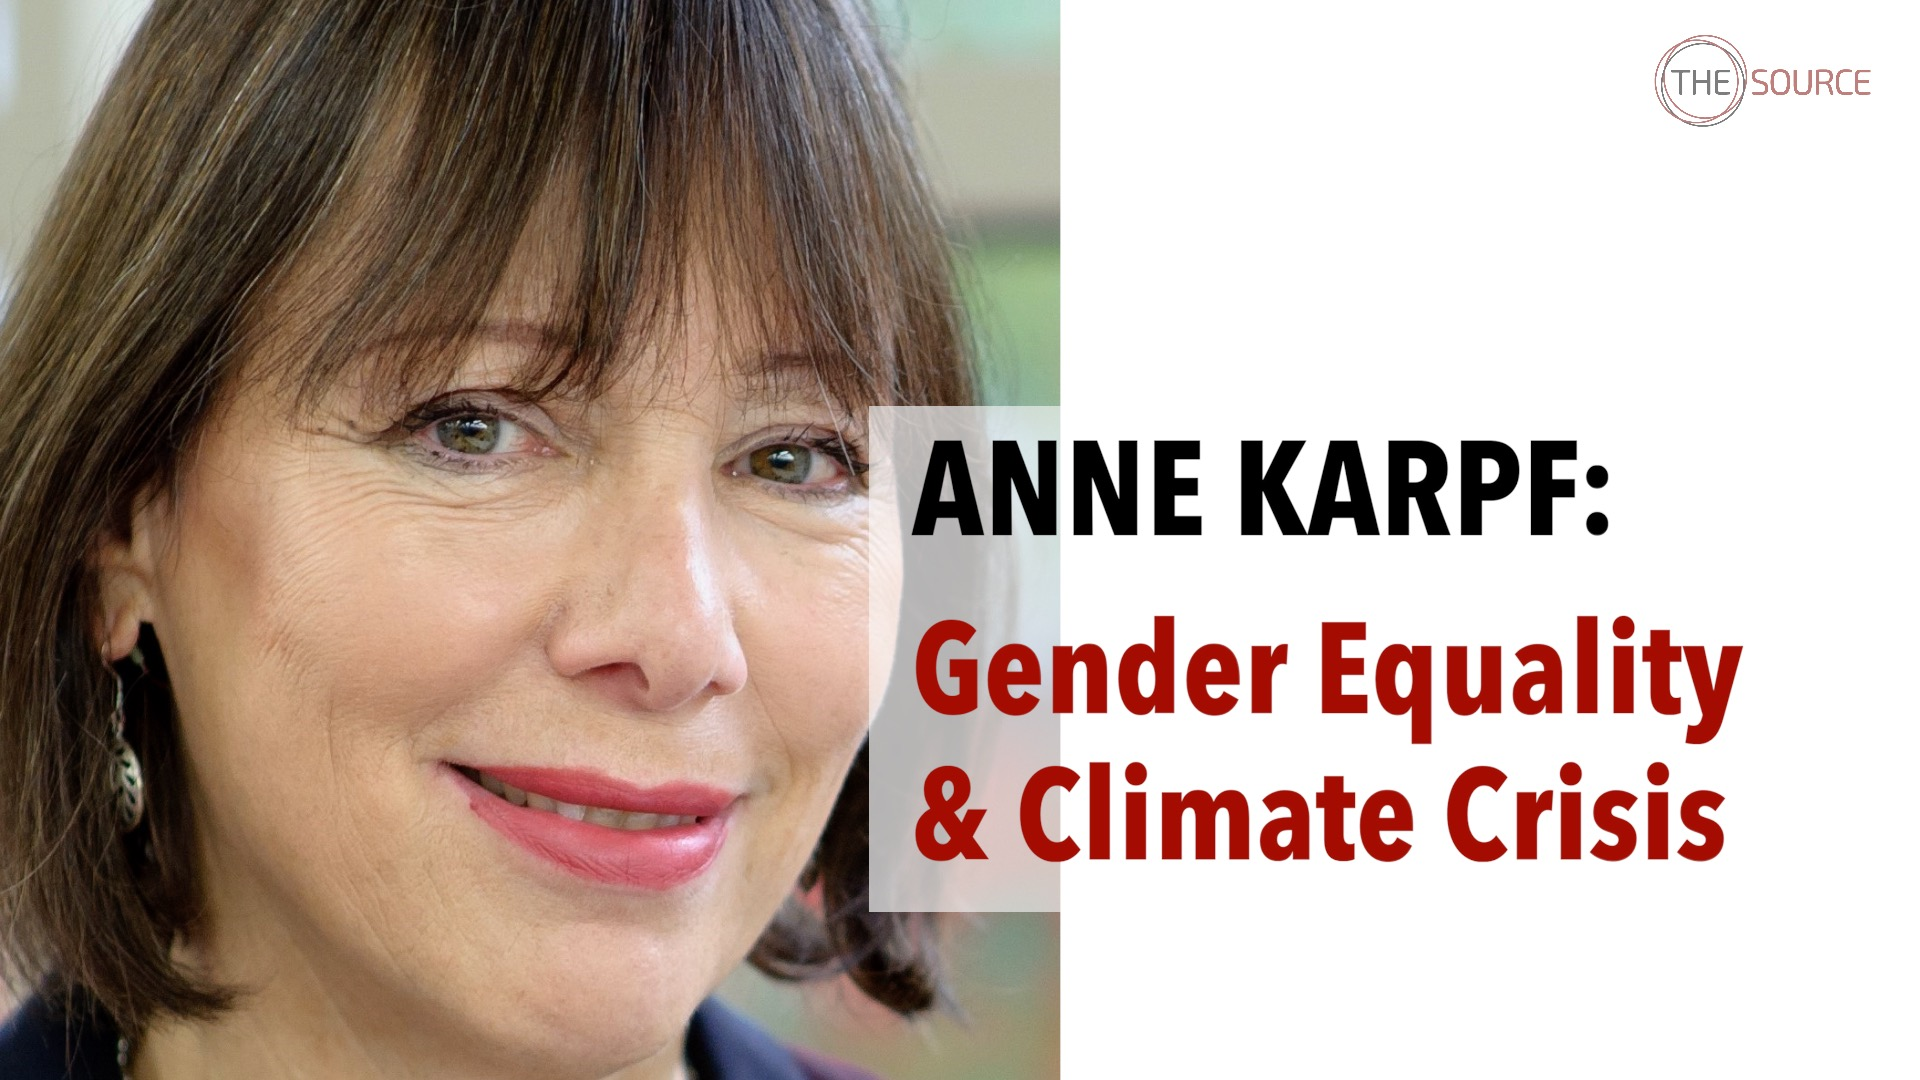 Is there a link between Gender Equality and the Climate Crisis?